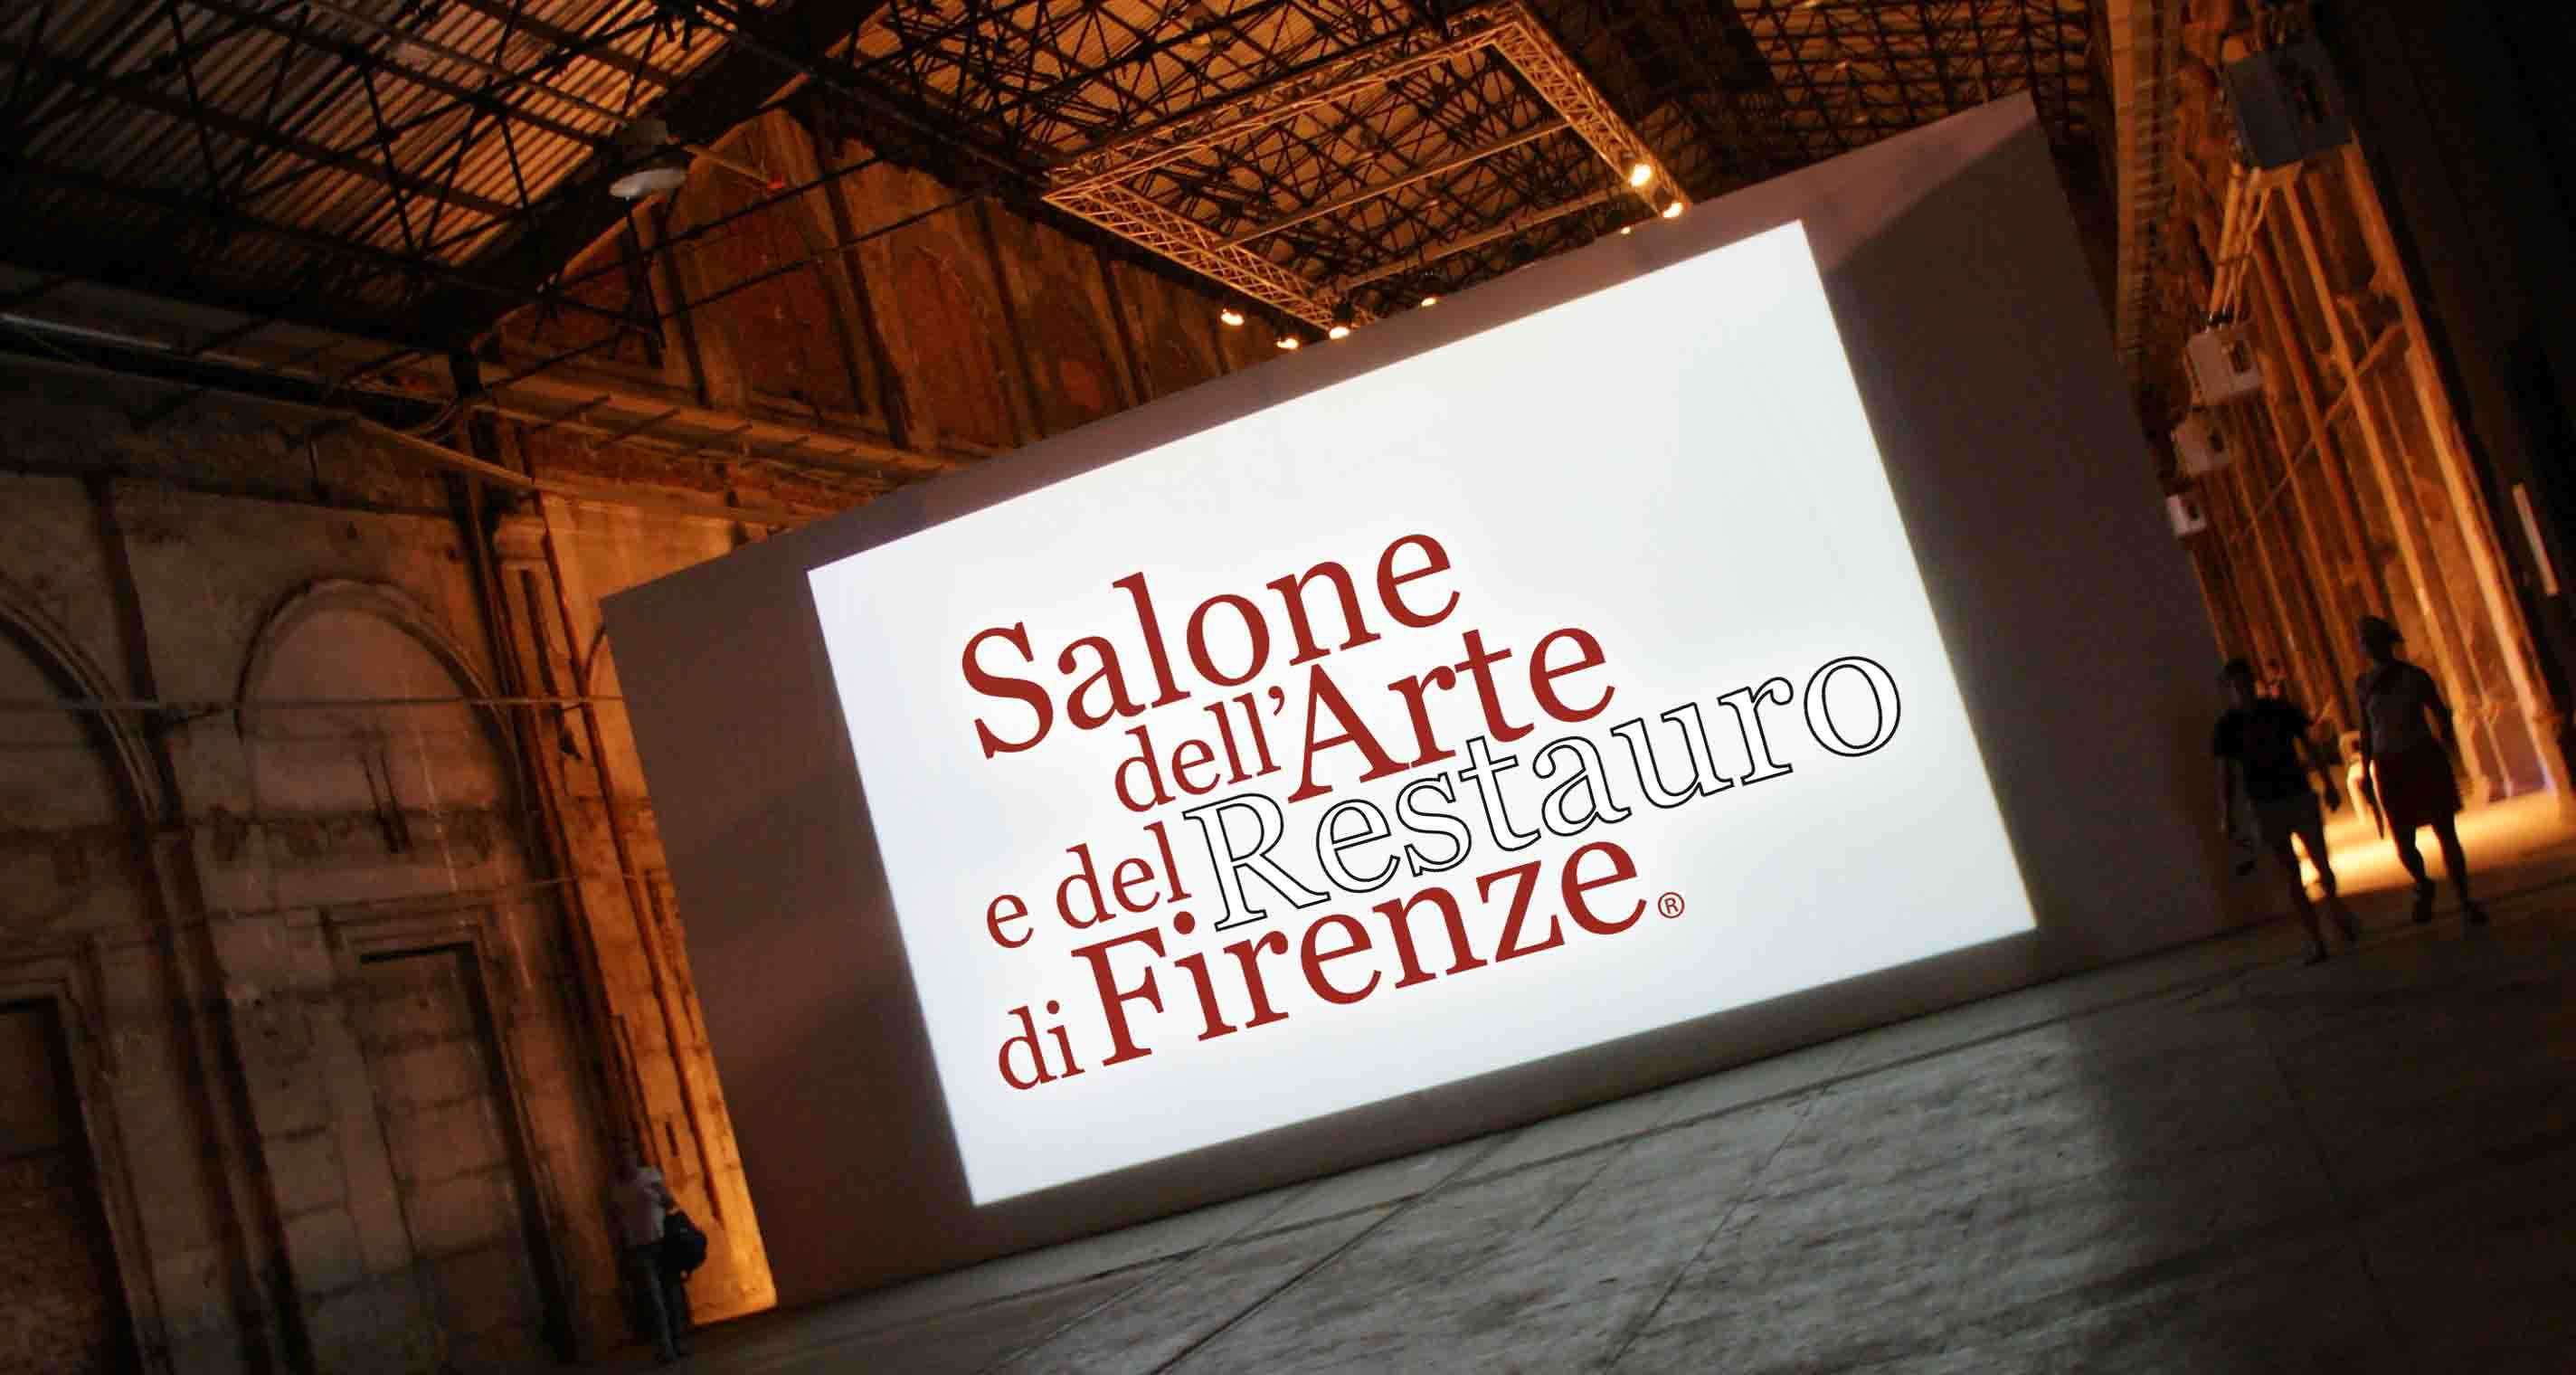 CAPuS project presented at the 6th International Art and Restoration Fair in Florence, Italy